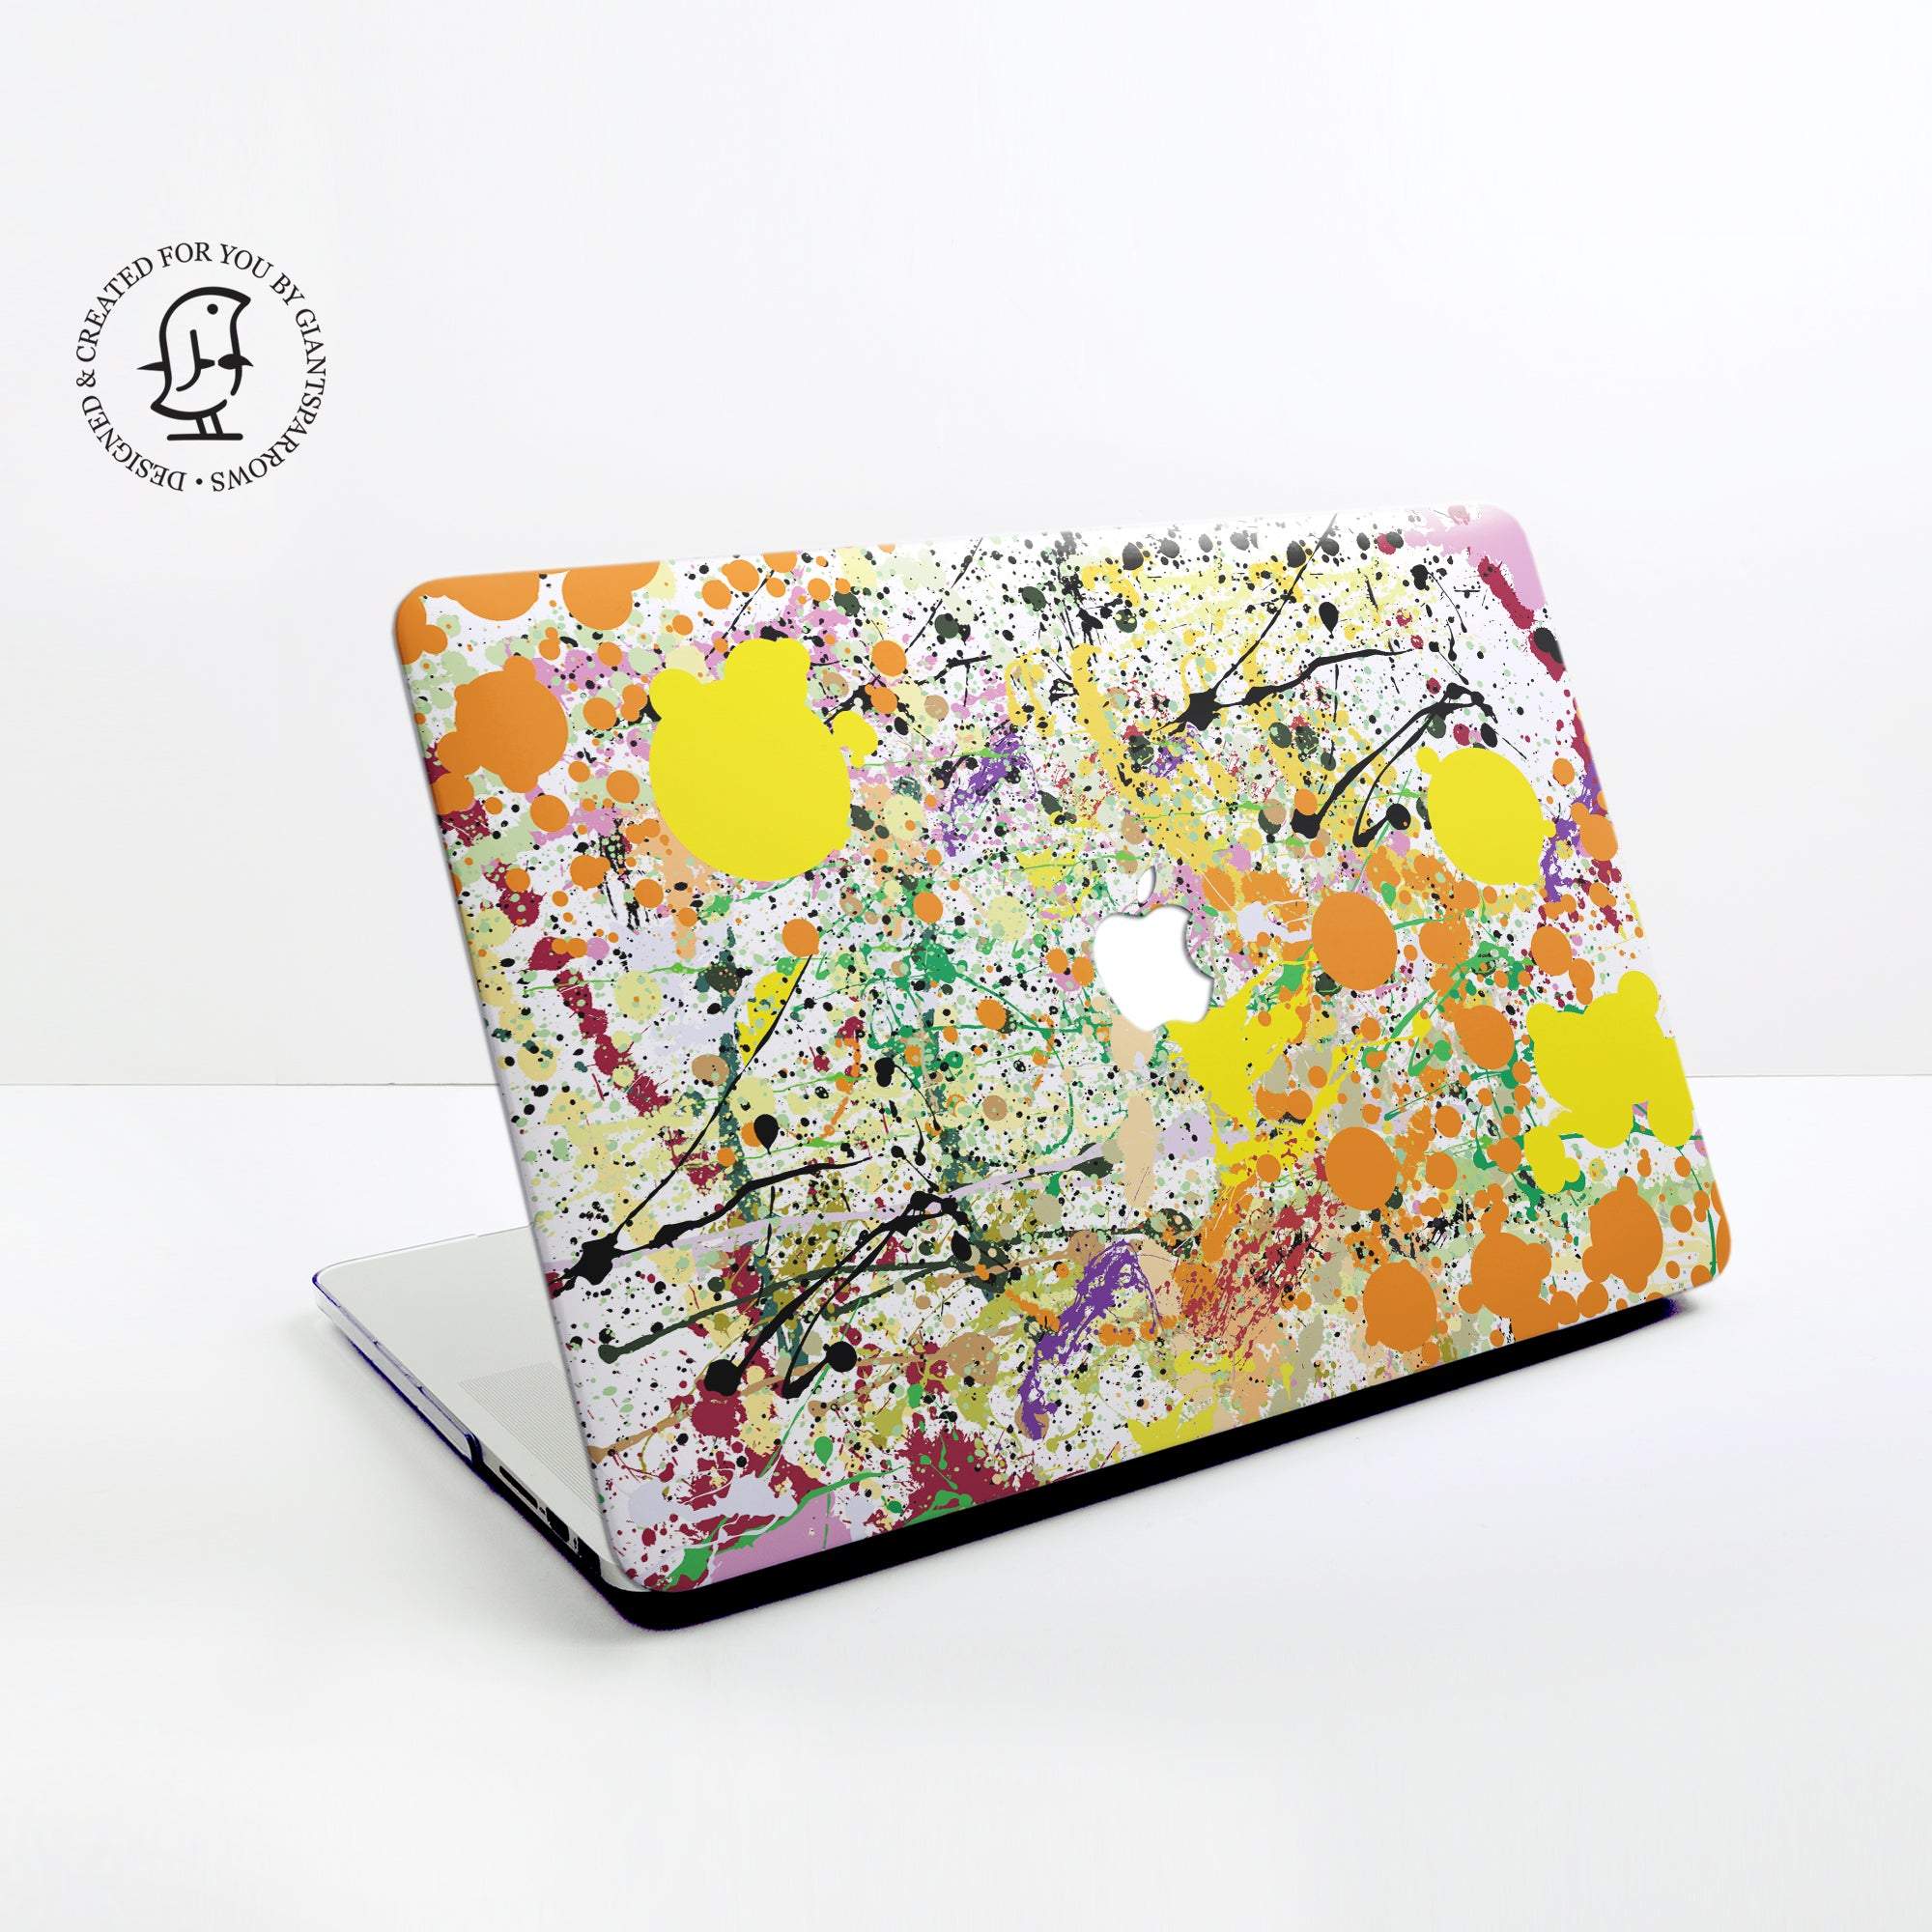 Paint Splat in Orange, Black and Yellow Design Hard Protective Case for all MacBooks